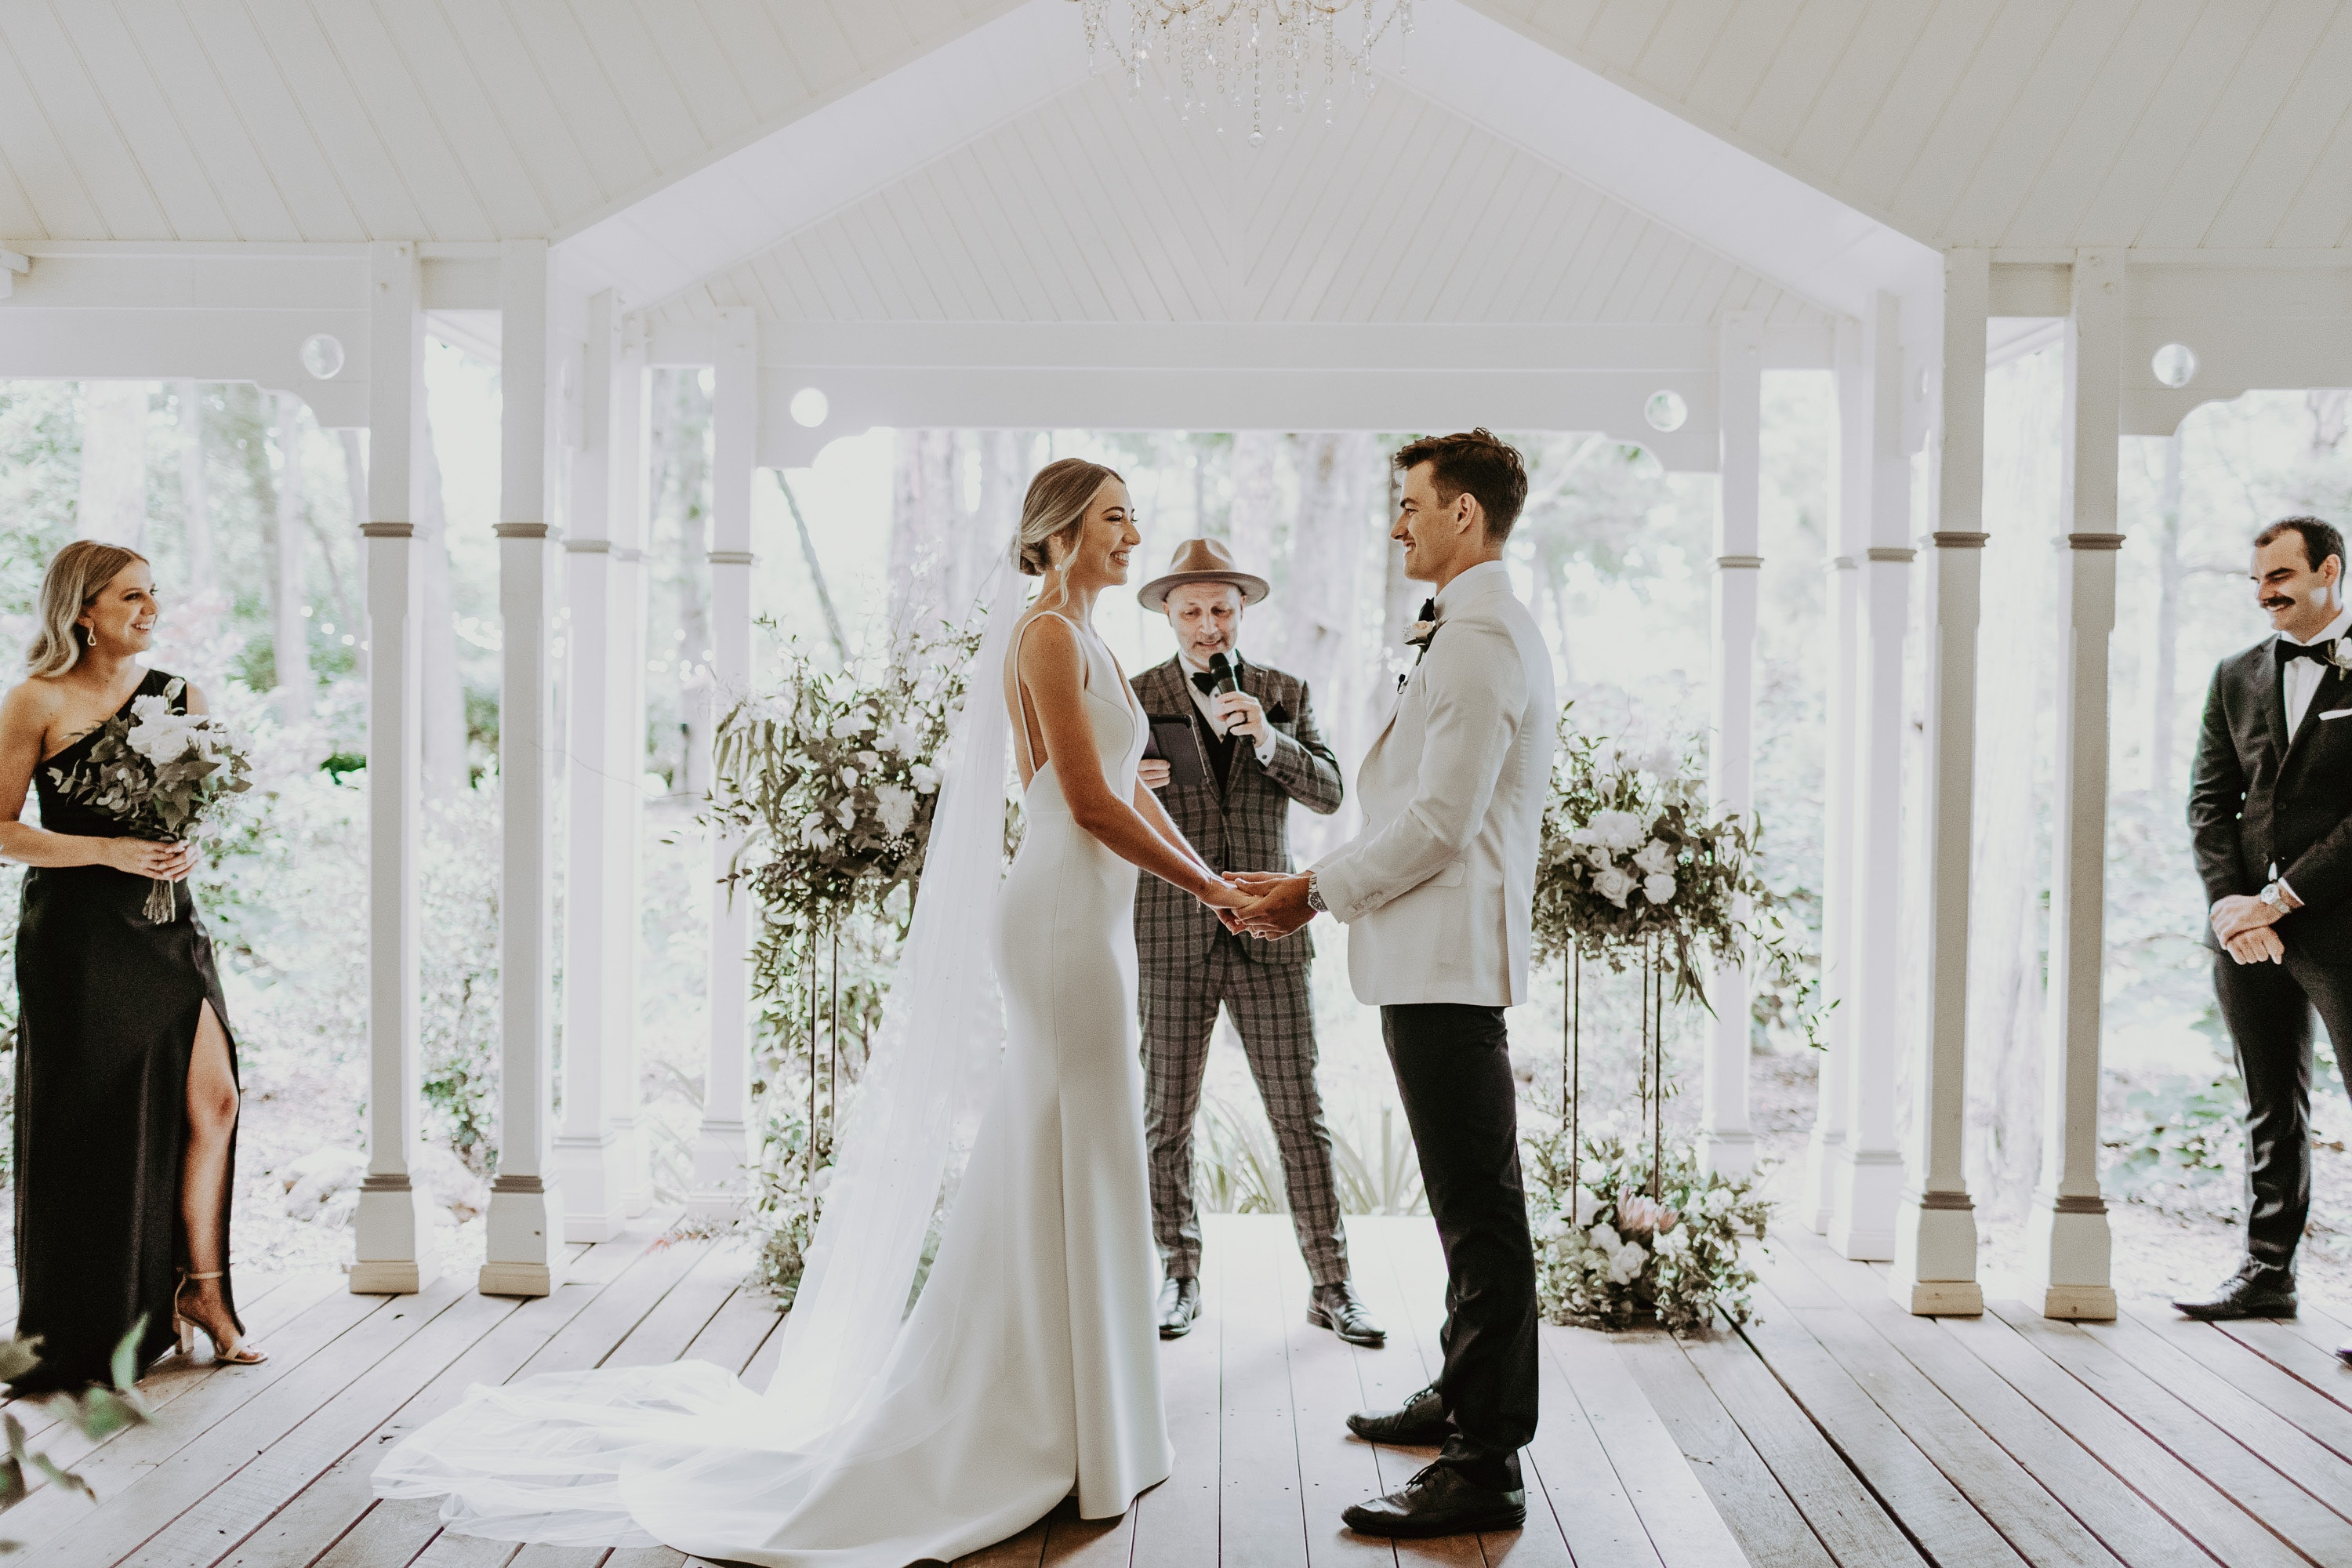 Bride and groom standing at aisle exchanging vows